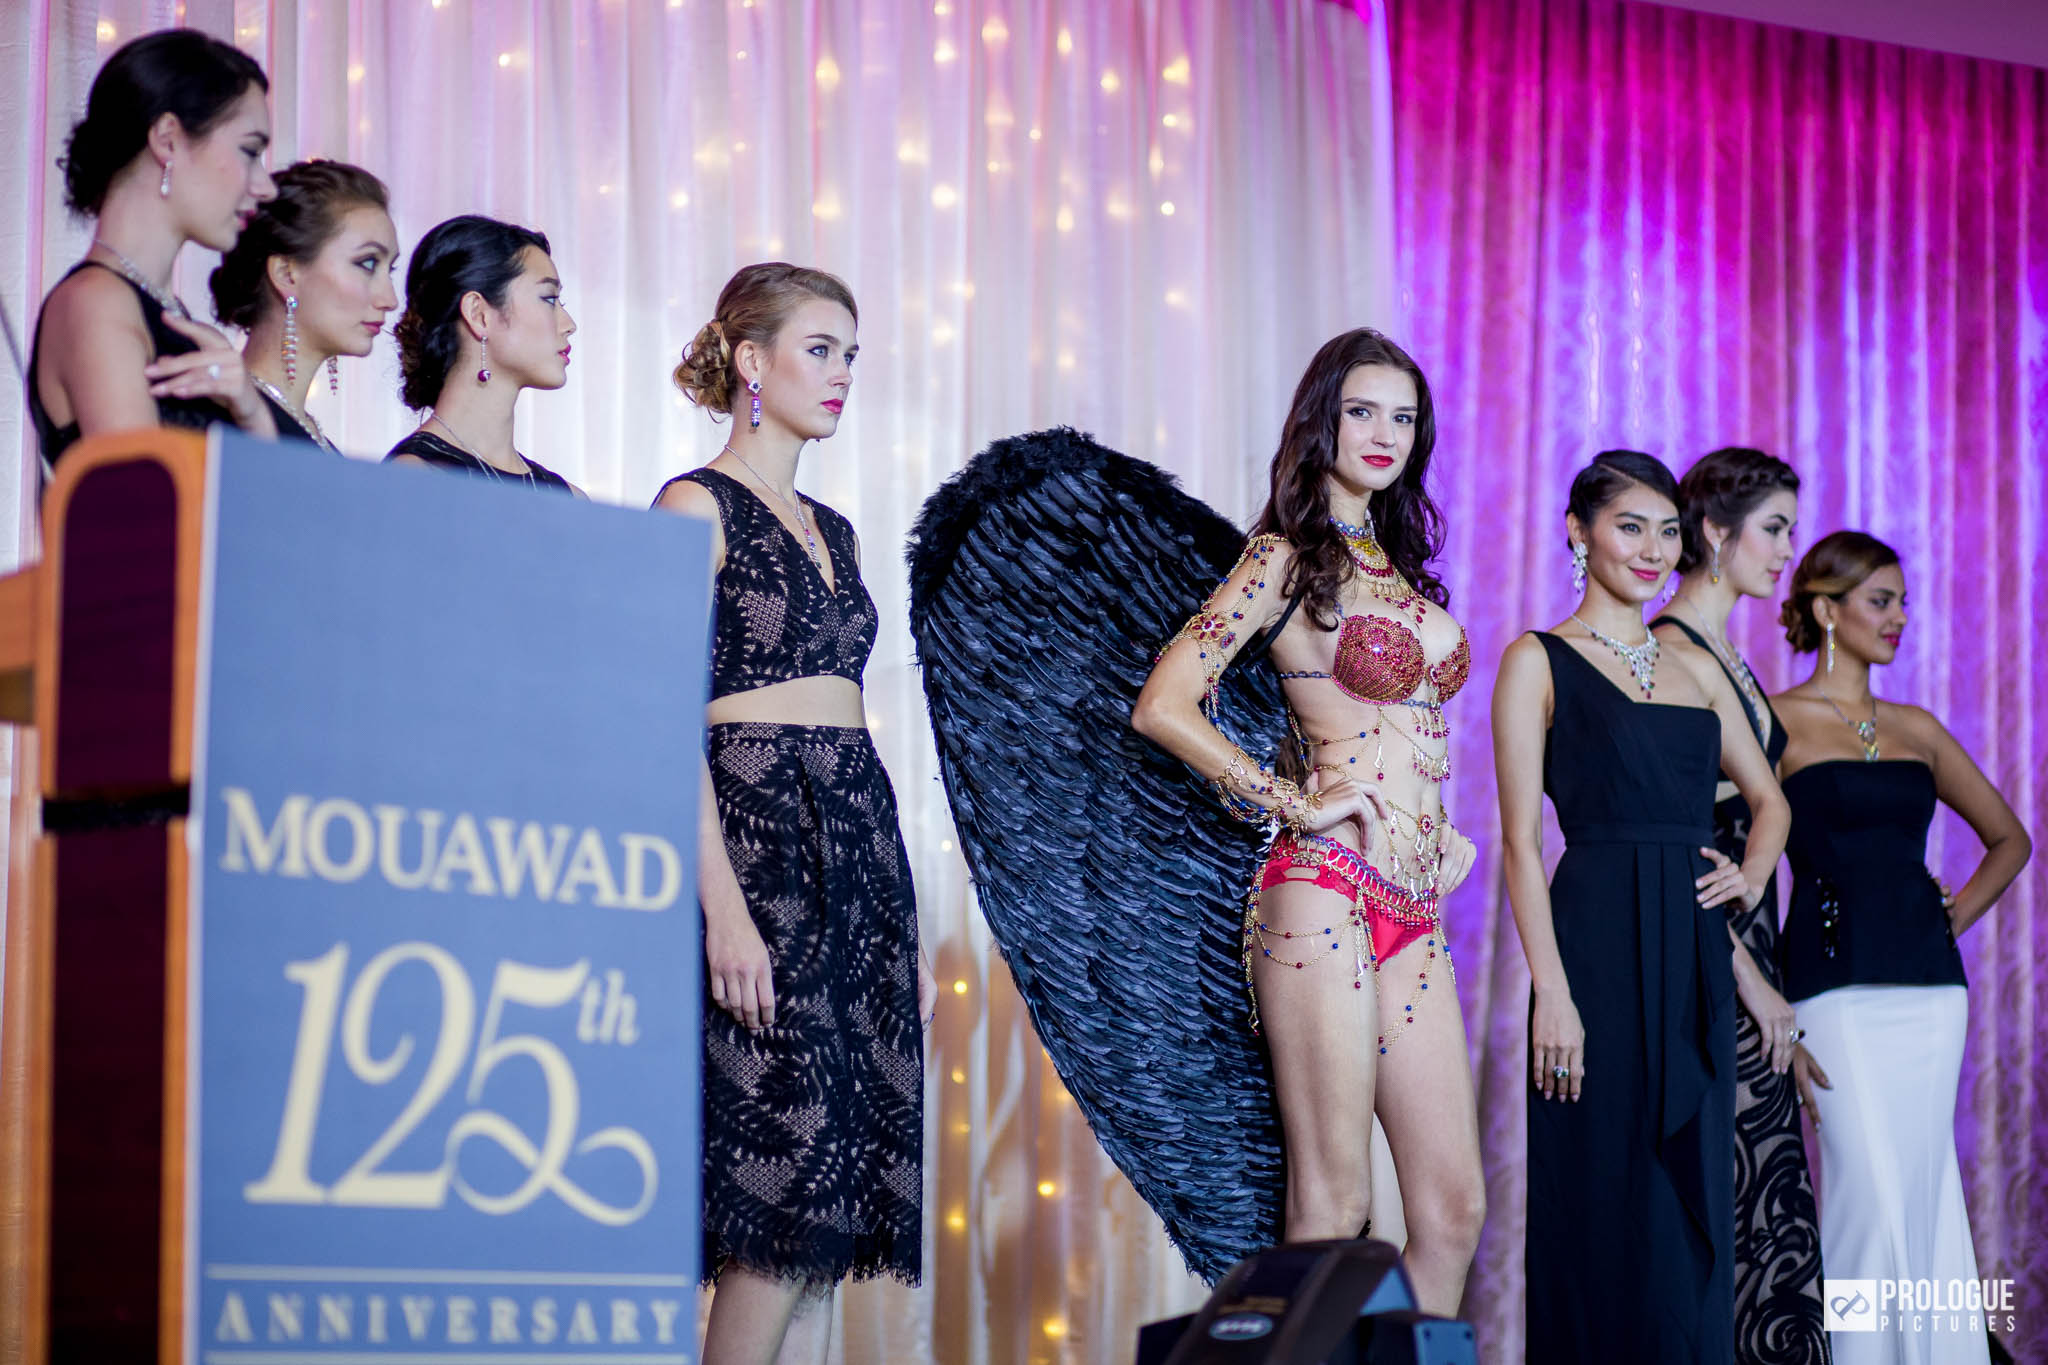 mouawad-125th-anniversary-event-photography-singapore-prologue-pictures-22